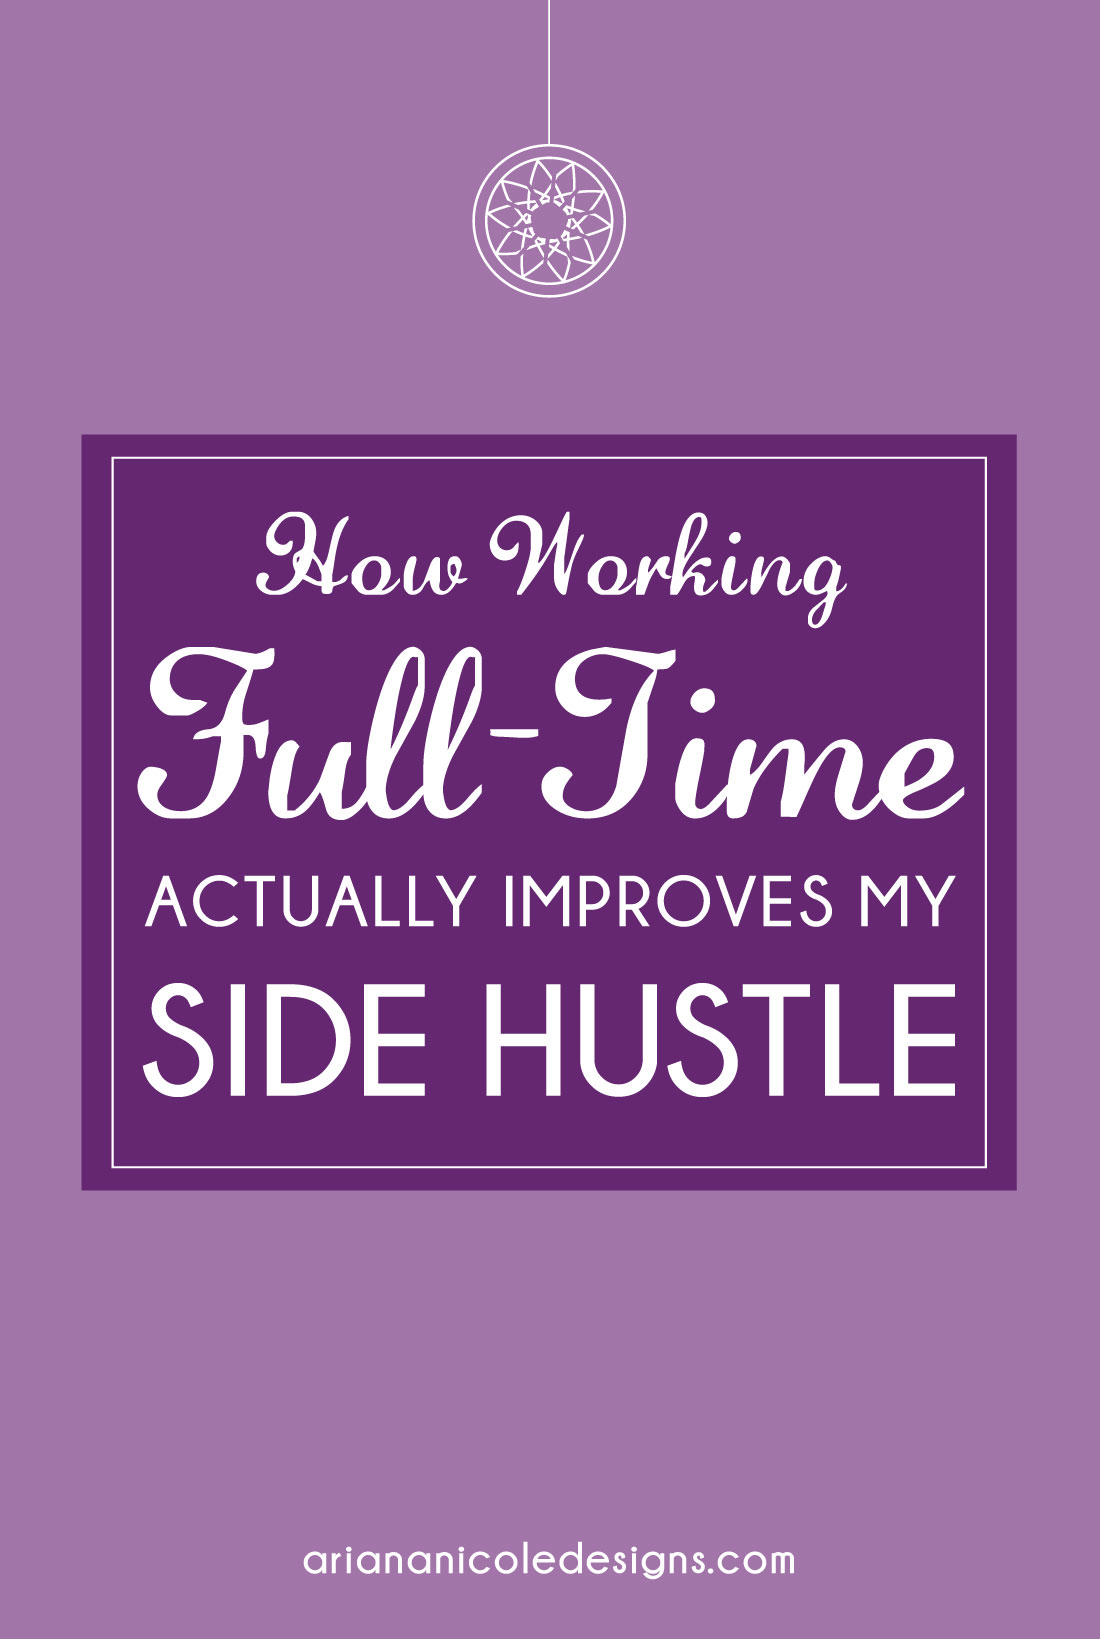 How-Working-Full-Time-Actually-Improves-My-Side-Hustle-1100